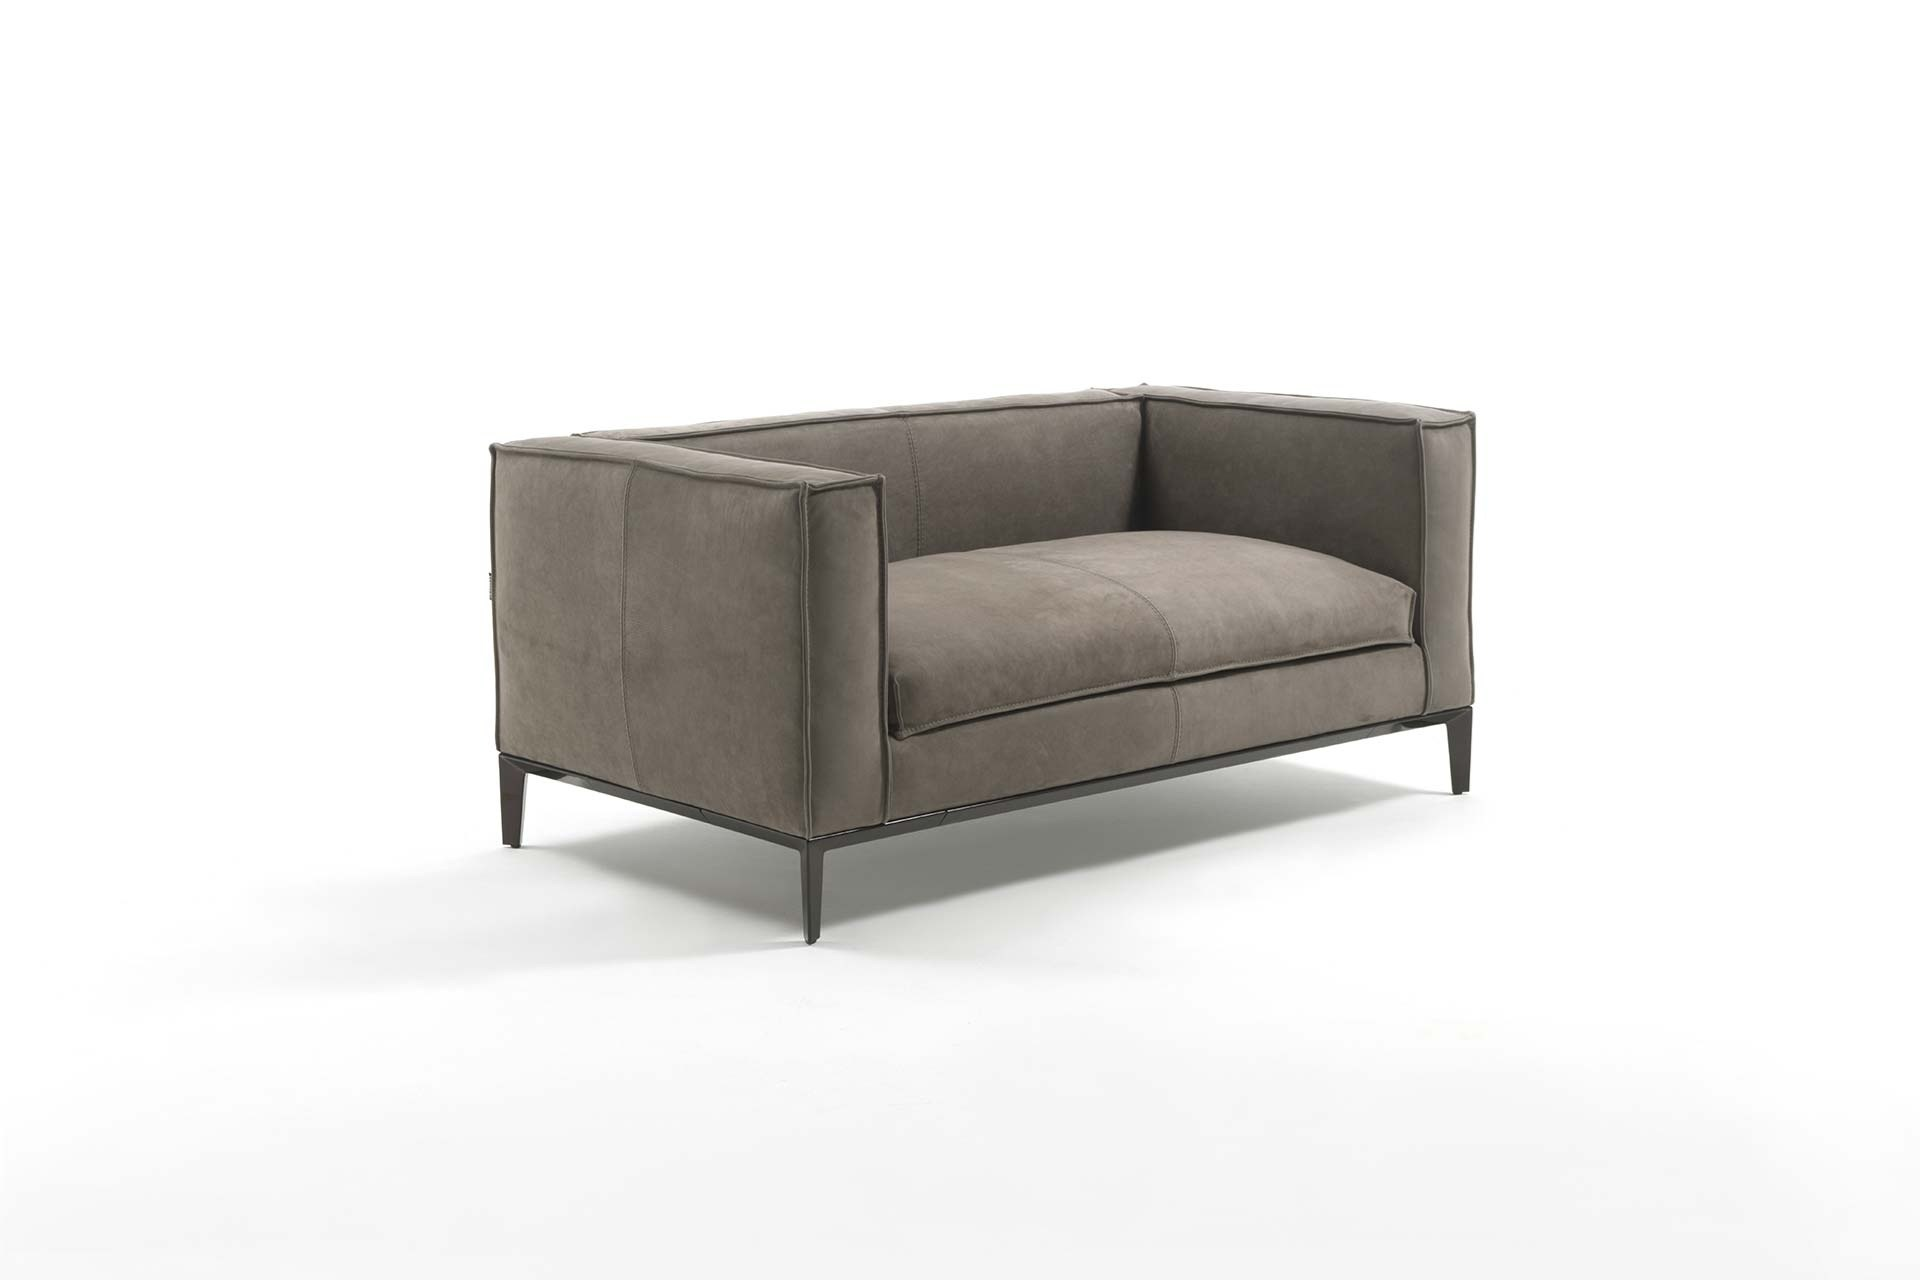 TAYLOR JUNIOR Leather small sofa by FRIGERIO POLTRONE E DIVANI